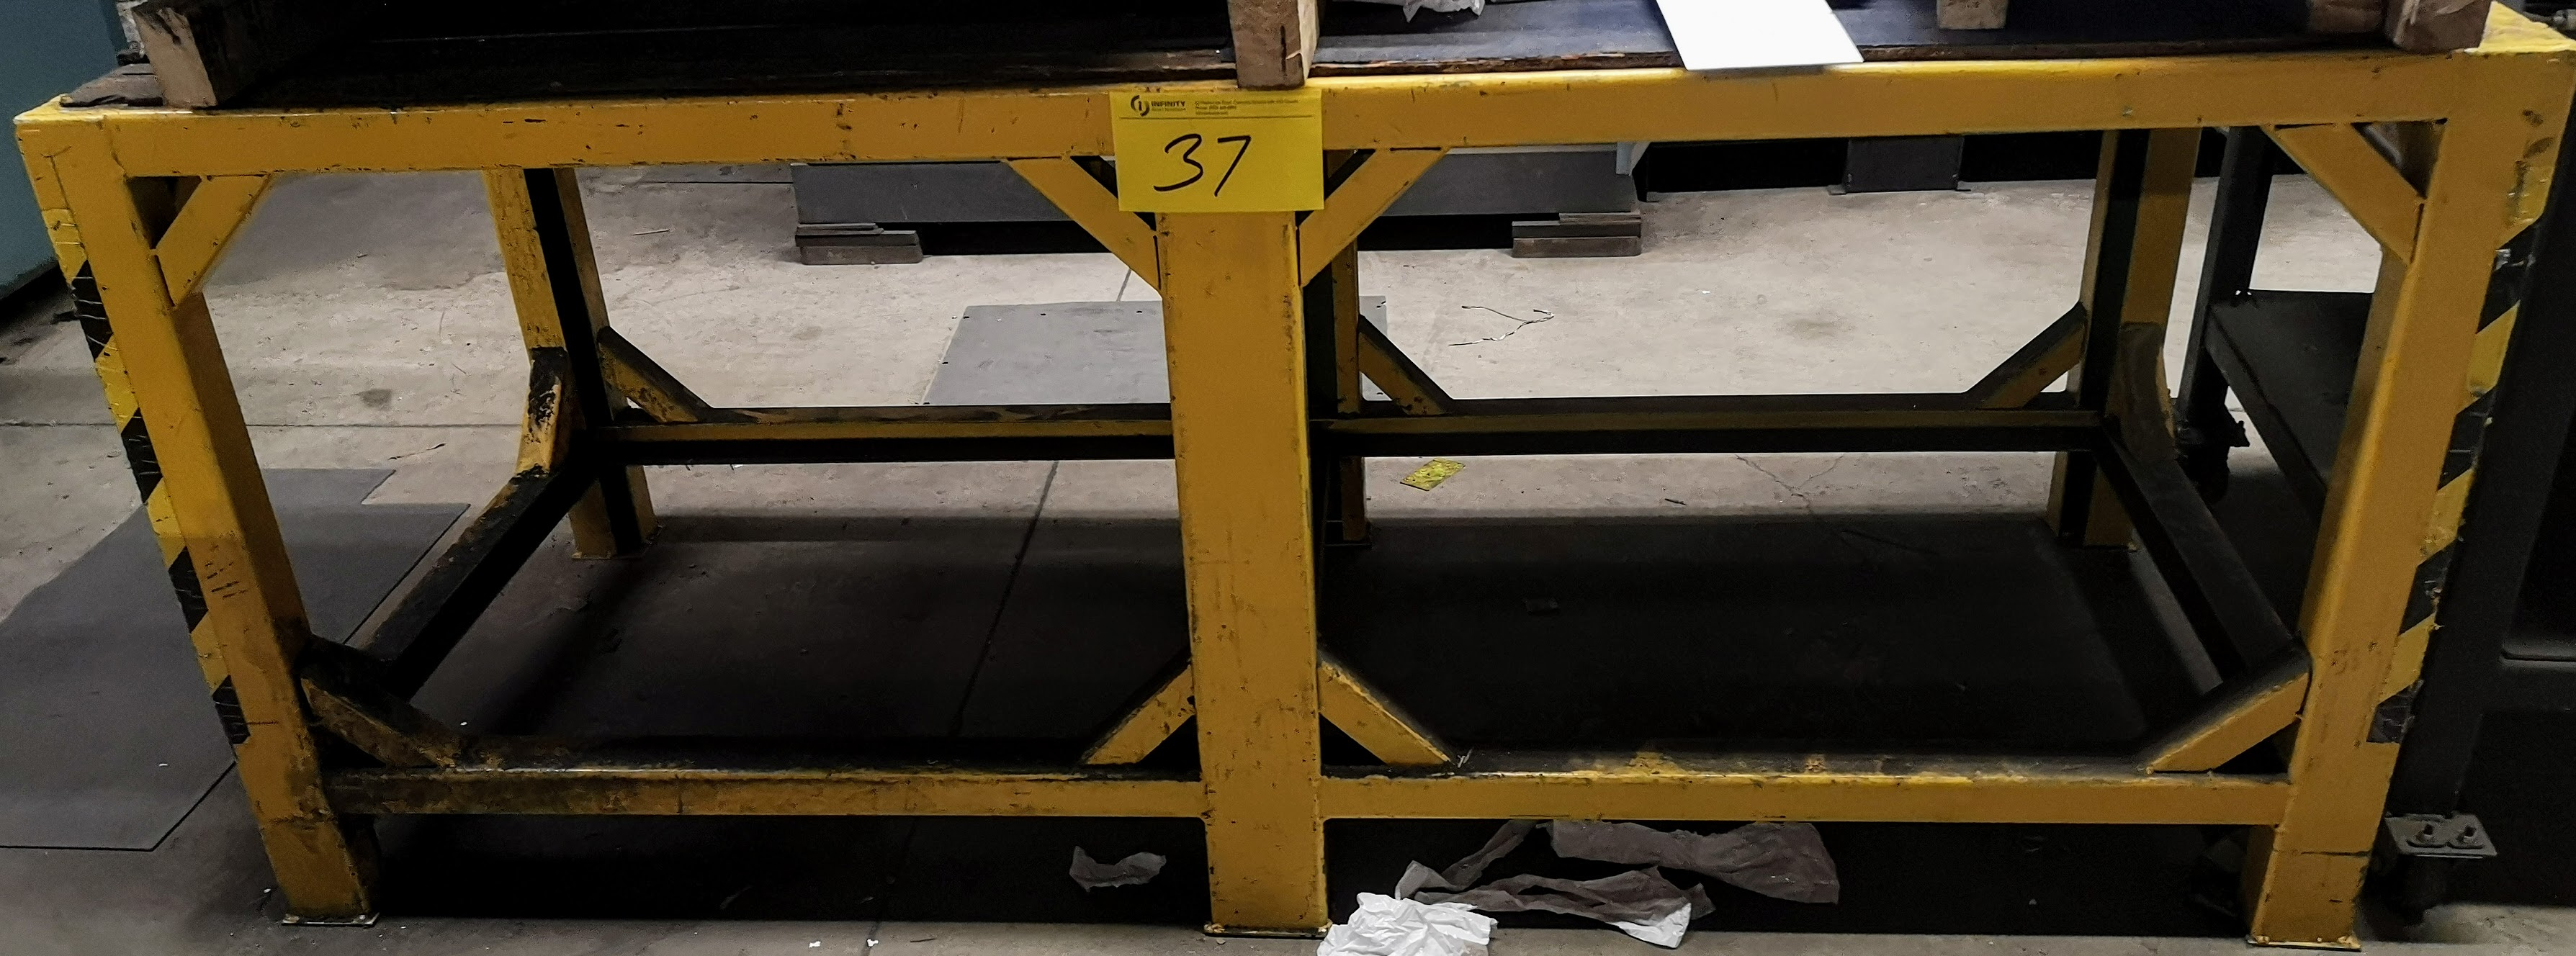 "Lot 37 - 72"" X 31"" X 30"" STEEL WORK TABLE"